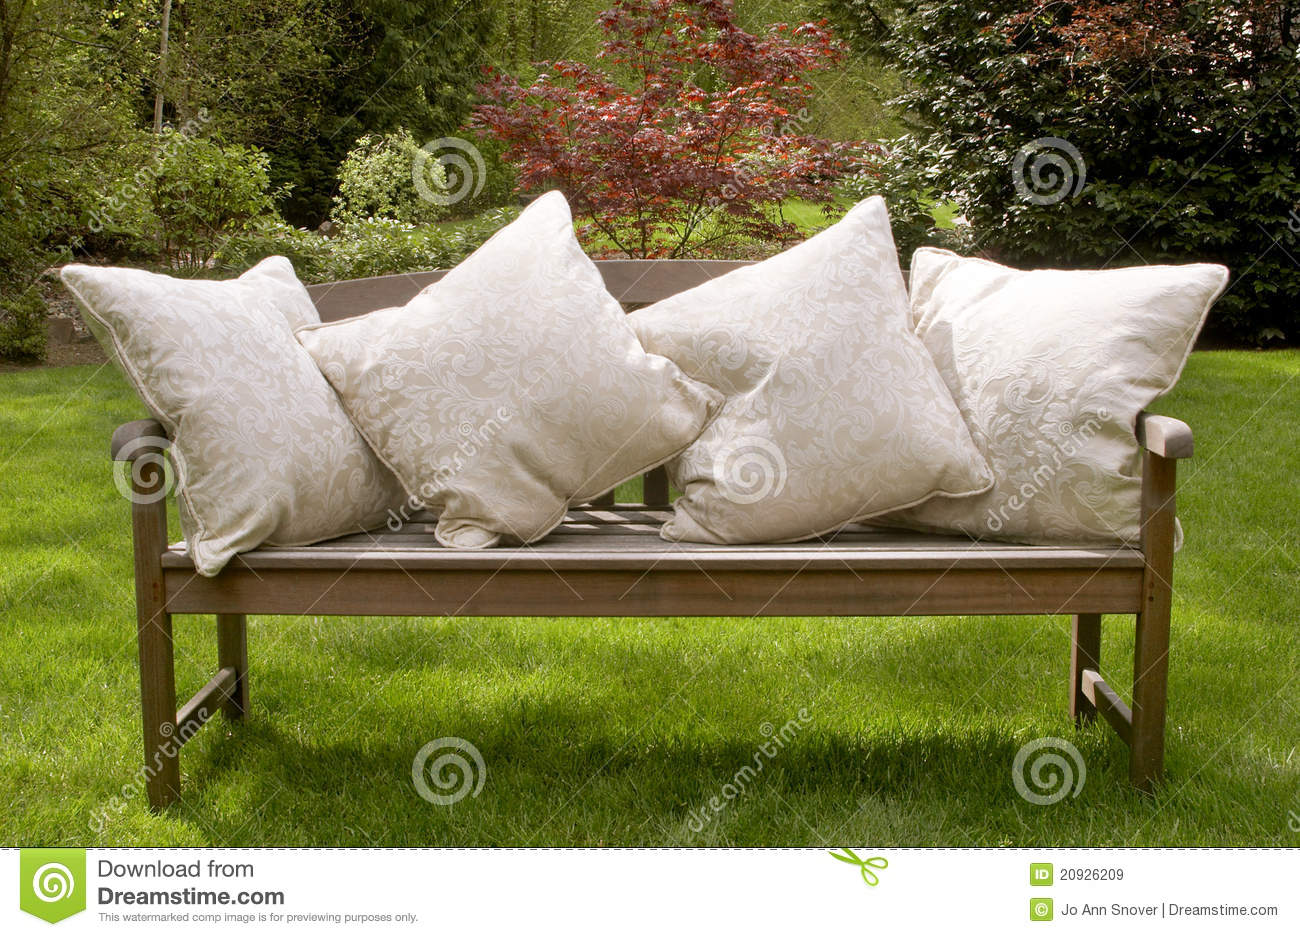 Garden Bench Cushions Stock Image Image Of Cushions 20926209